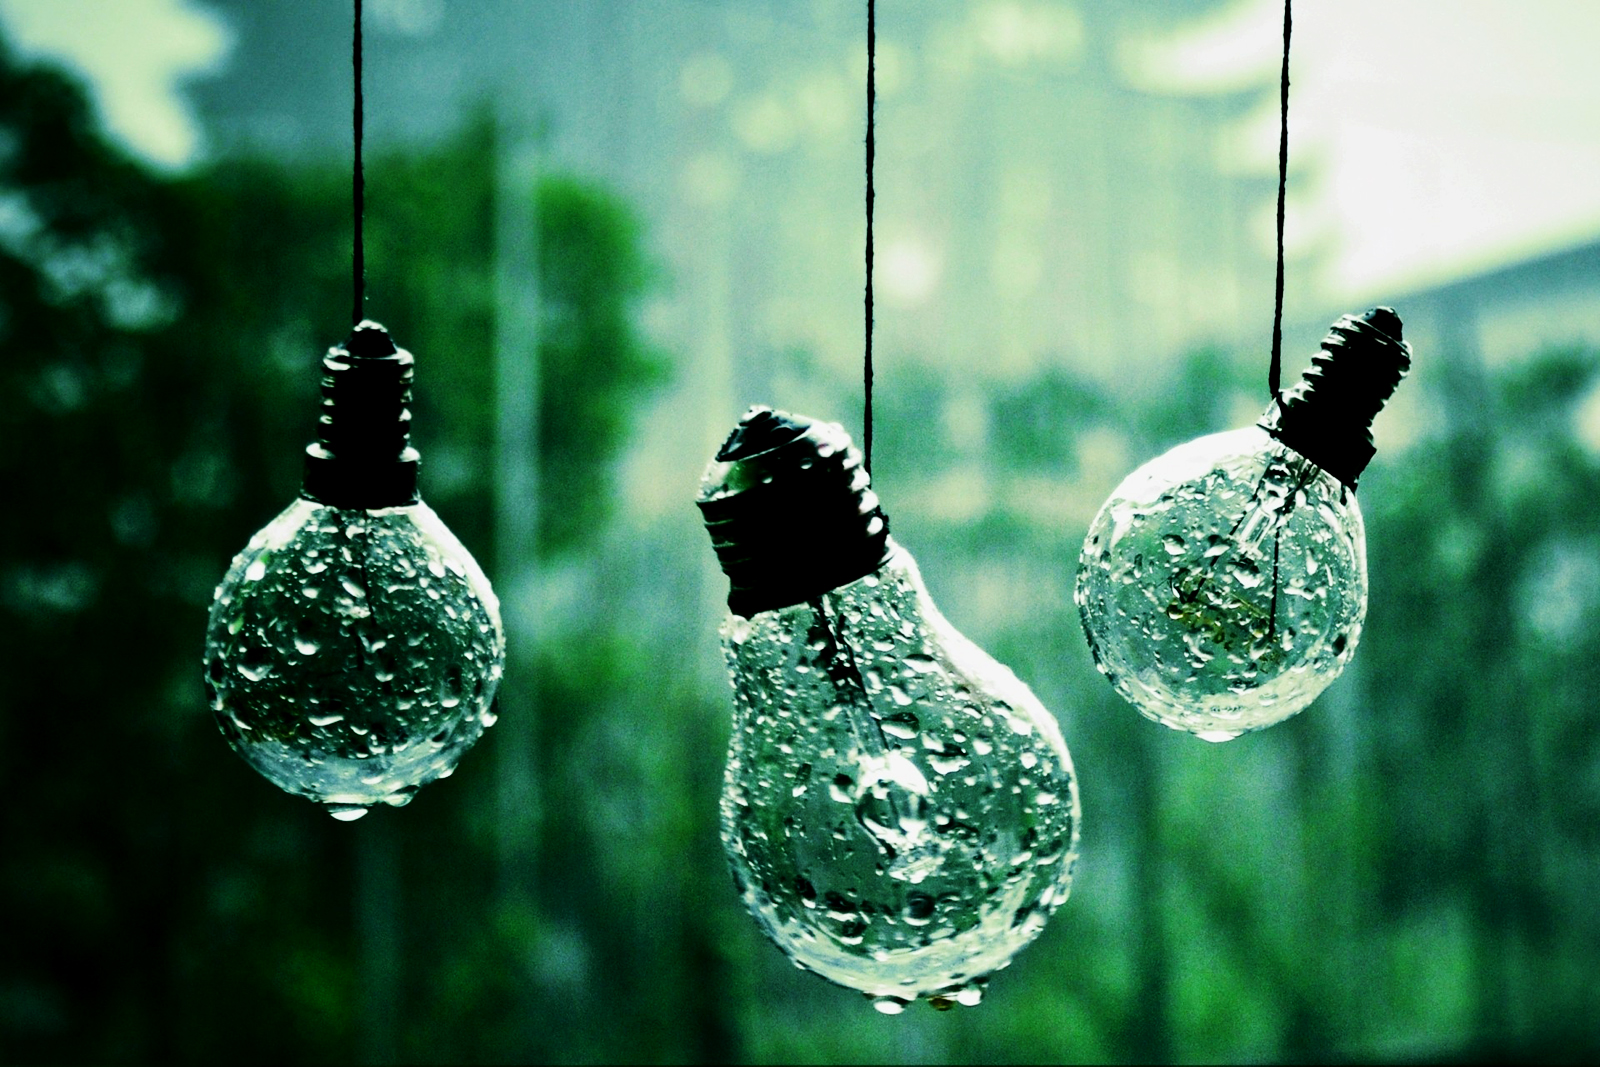 Raining Hd Wallpapers Wallpapersafari